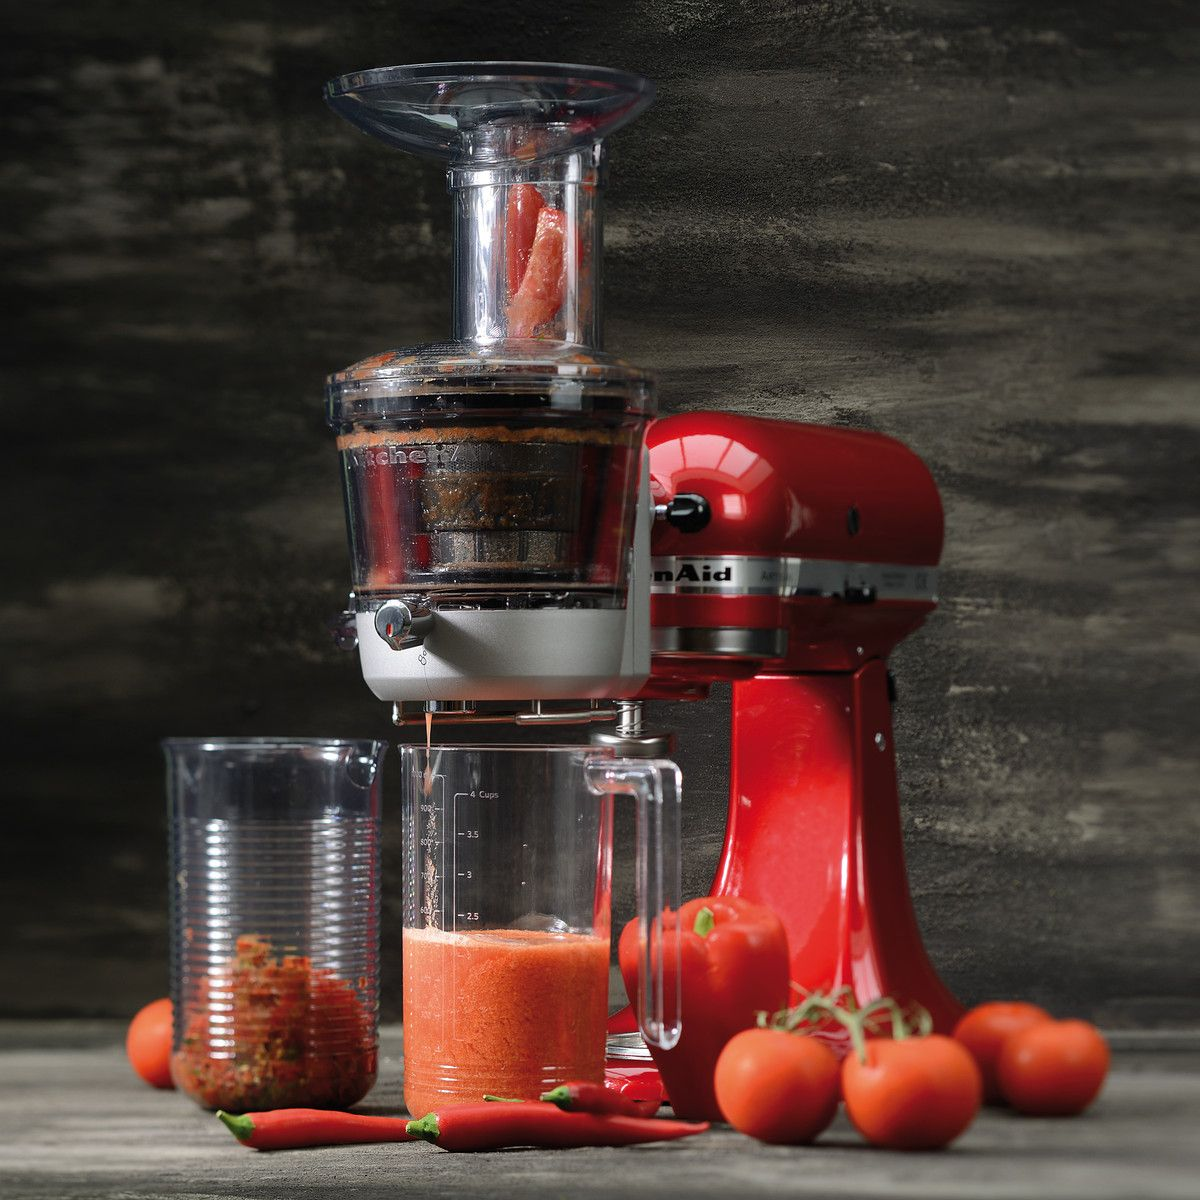 Have a mixer and what to get juicing then you definitely